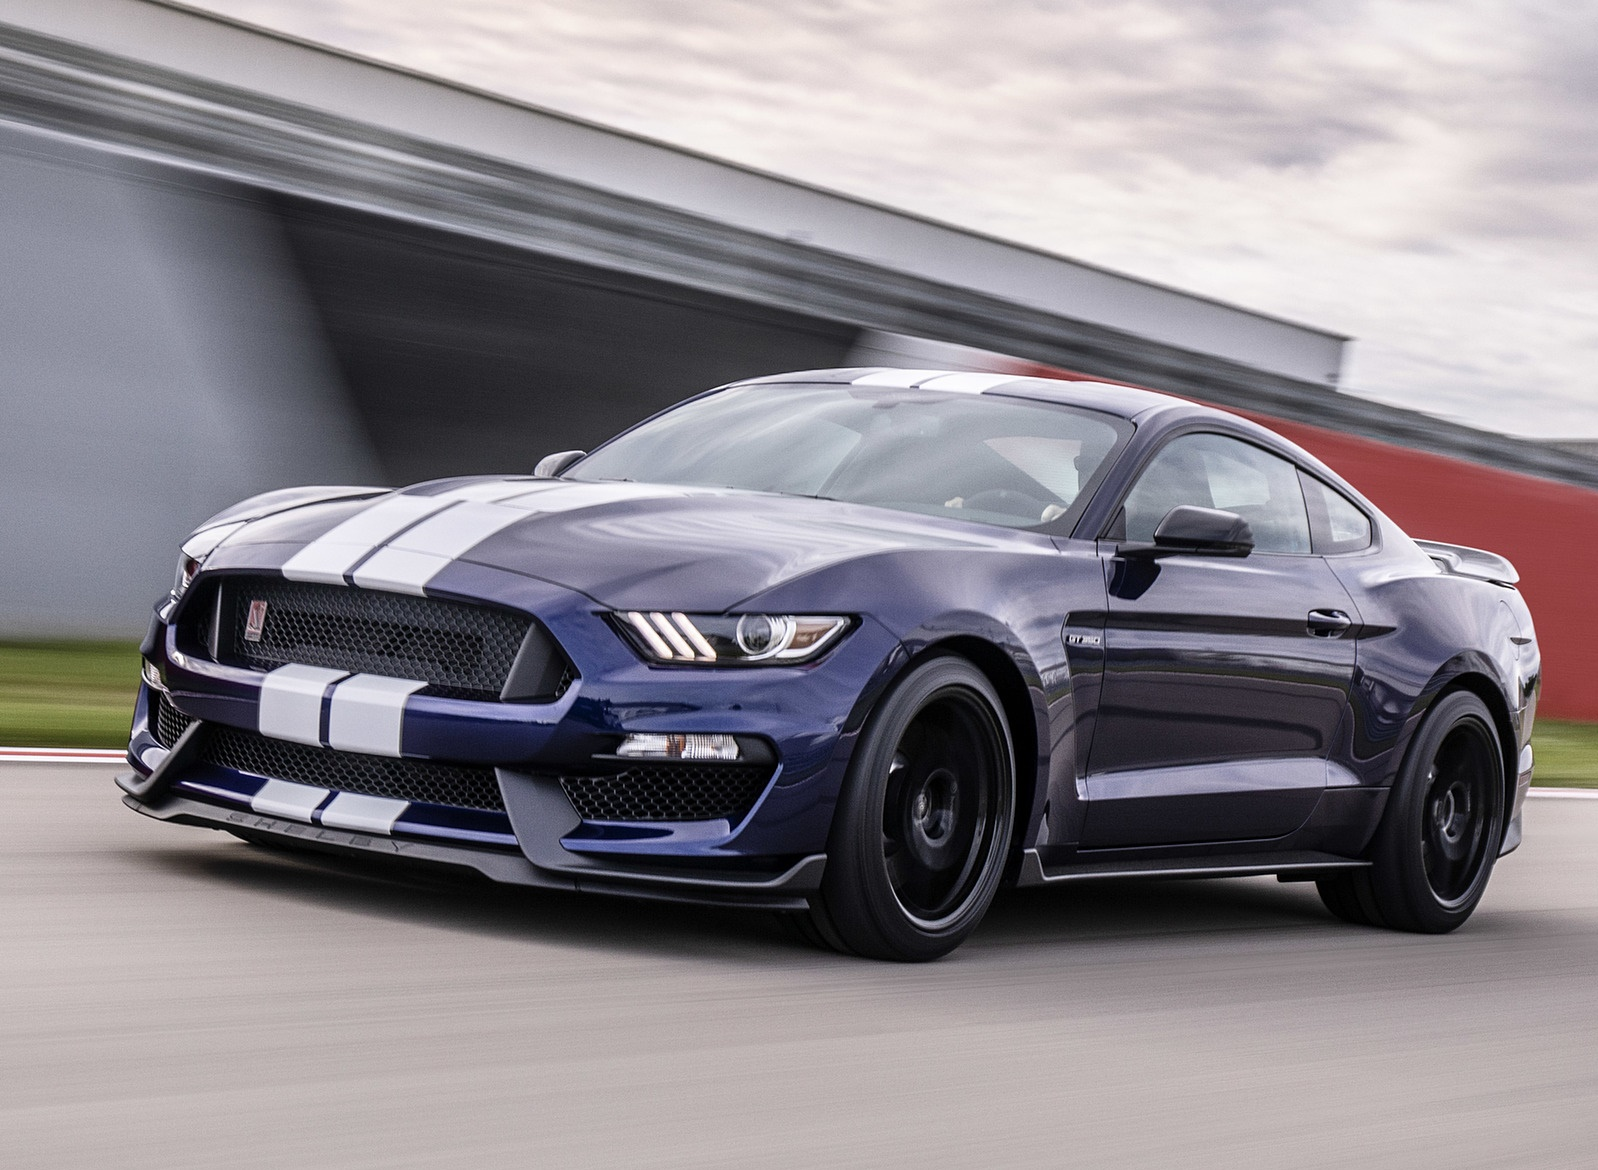 2019 Ford Mustang Shelby GT350 Front Three-Quarter Wallpapers (3)